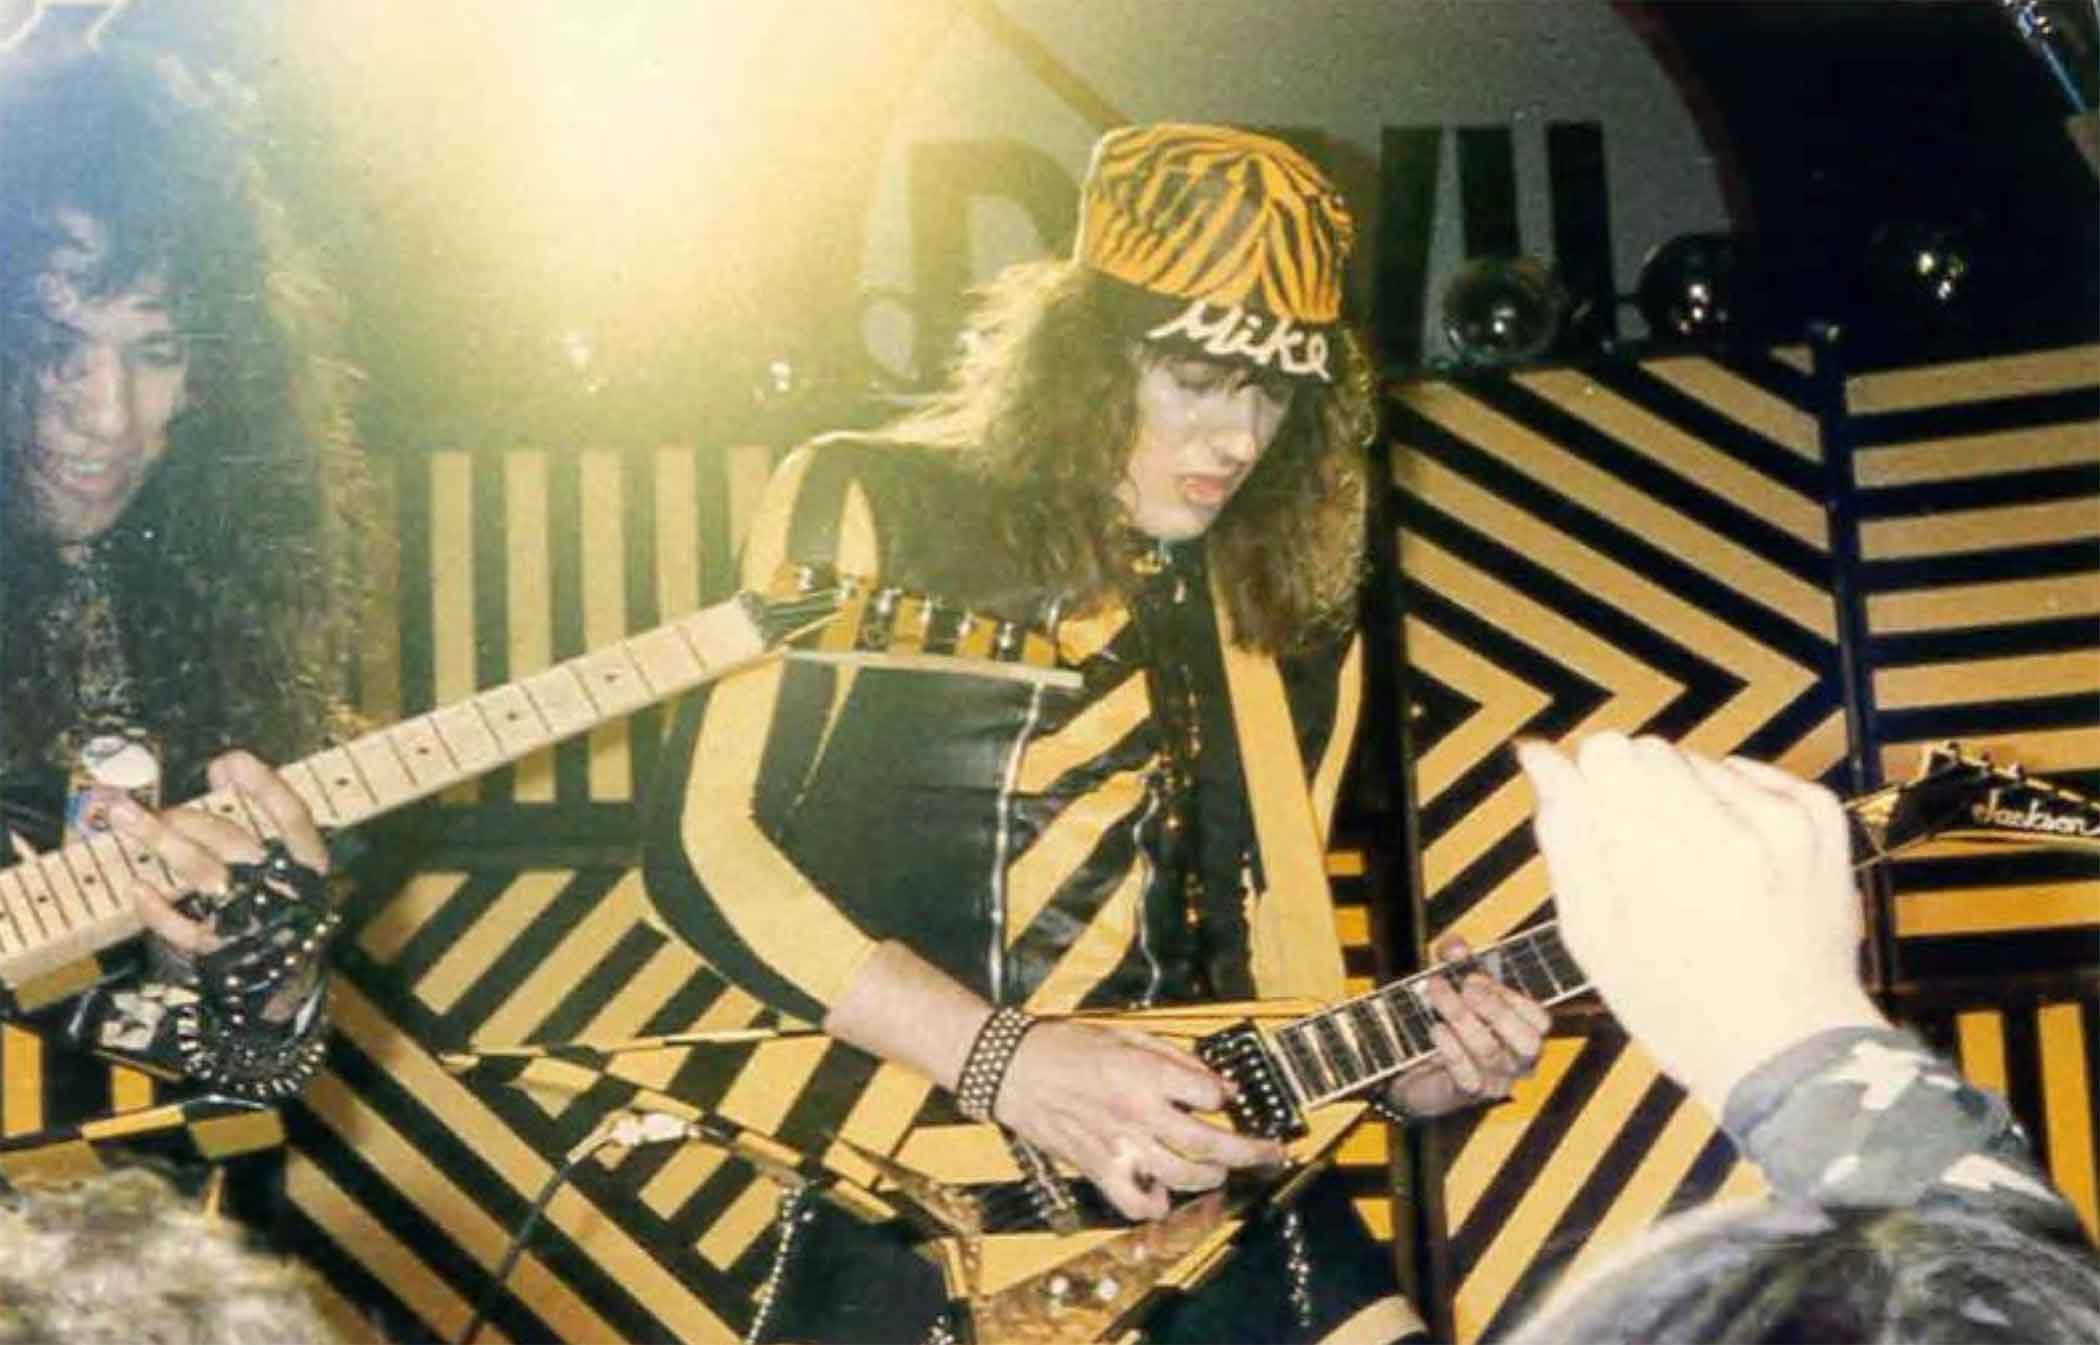 Michael Sweet, center, with Oz Fox of Stryper in Austin, TX in 1985